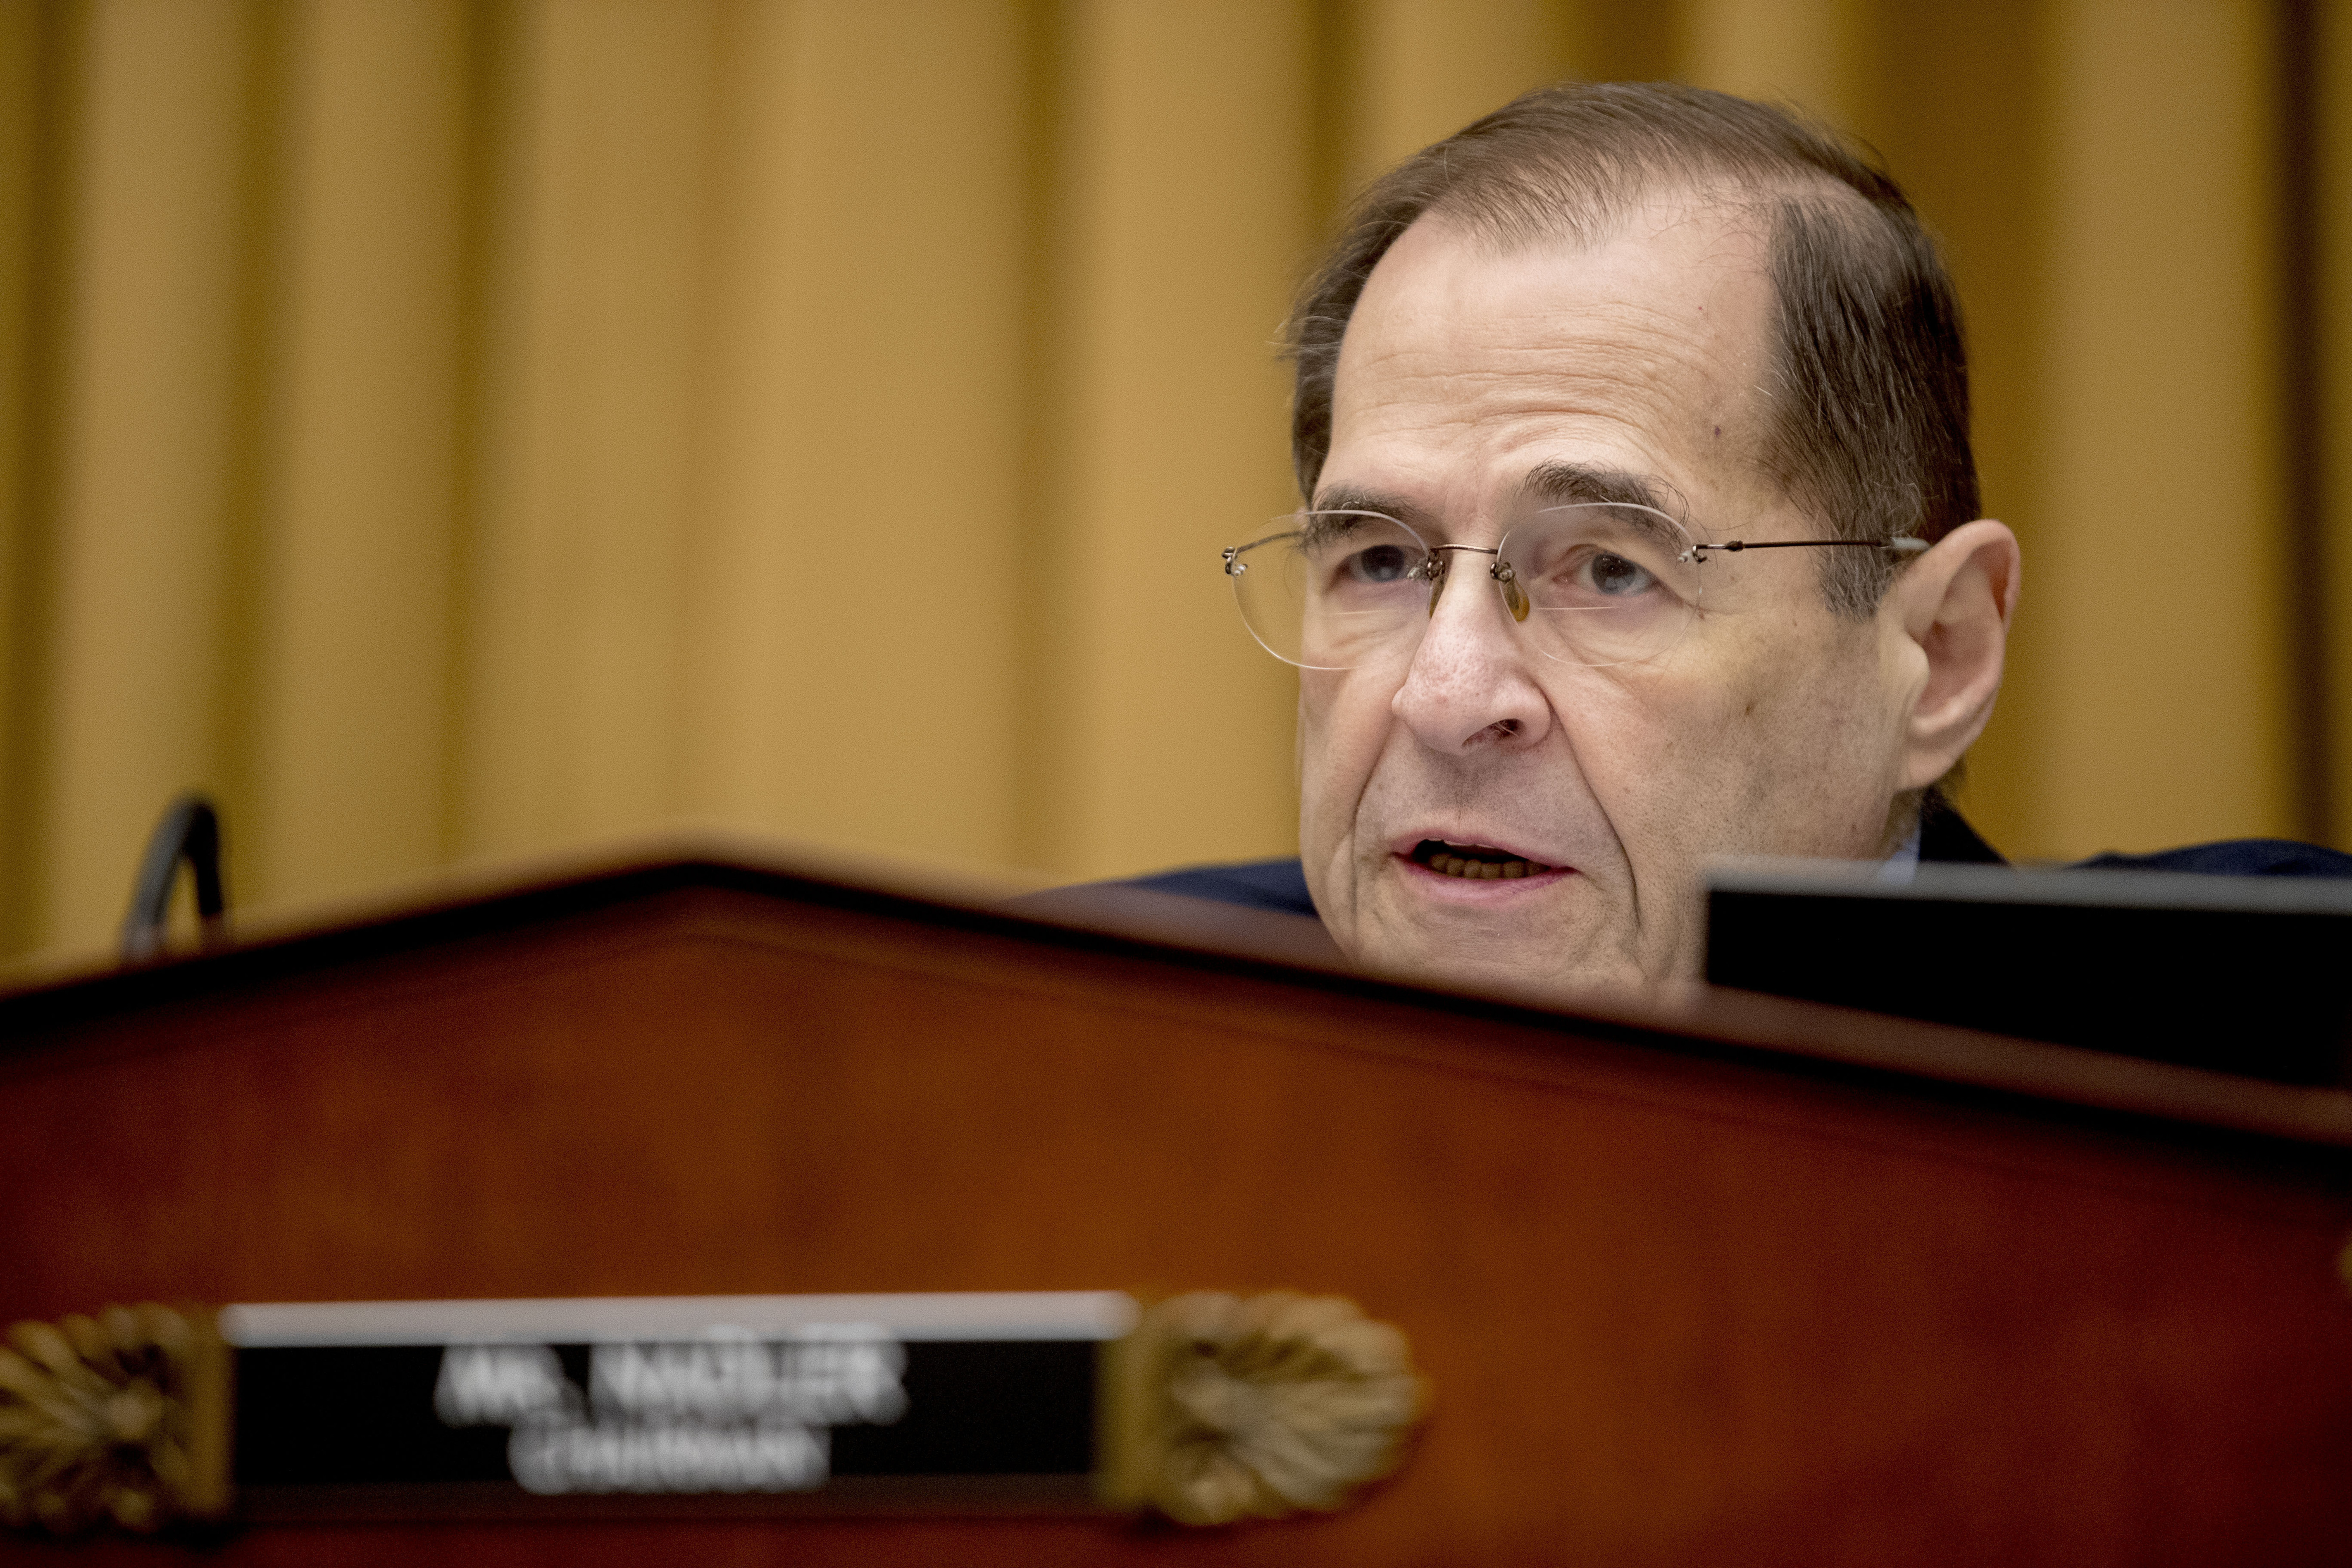 FILE - In this Friday, Feb. 8, 2019 file photo, Judiciary Committee Chairman Jerrold Nadler, D-N.Y., questions Acting Attorney General Matthew Whitaker as he appears before the House Judiciary Committee on Capitol Hill, in Washington.